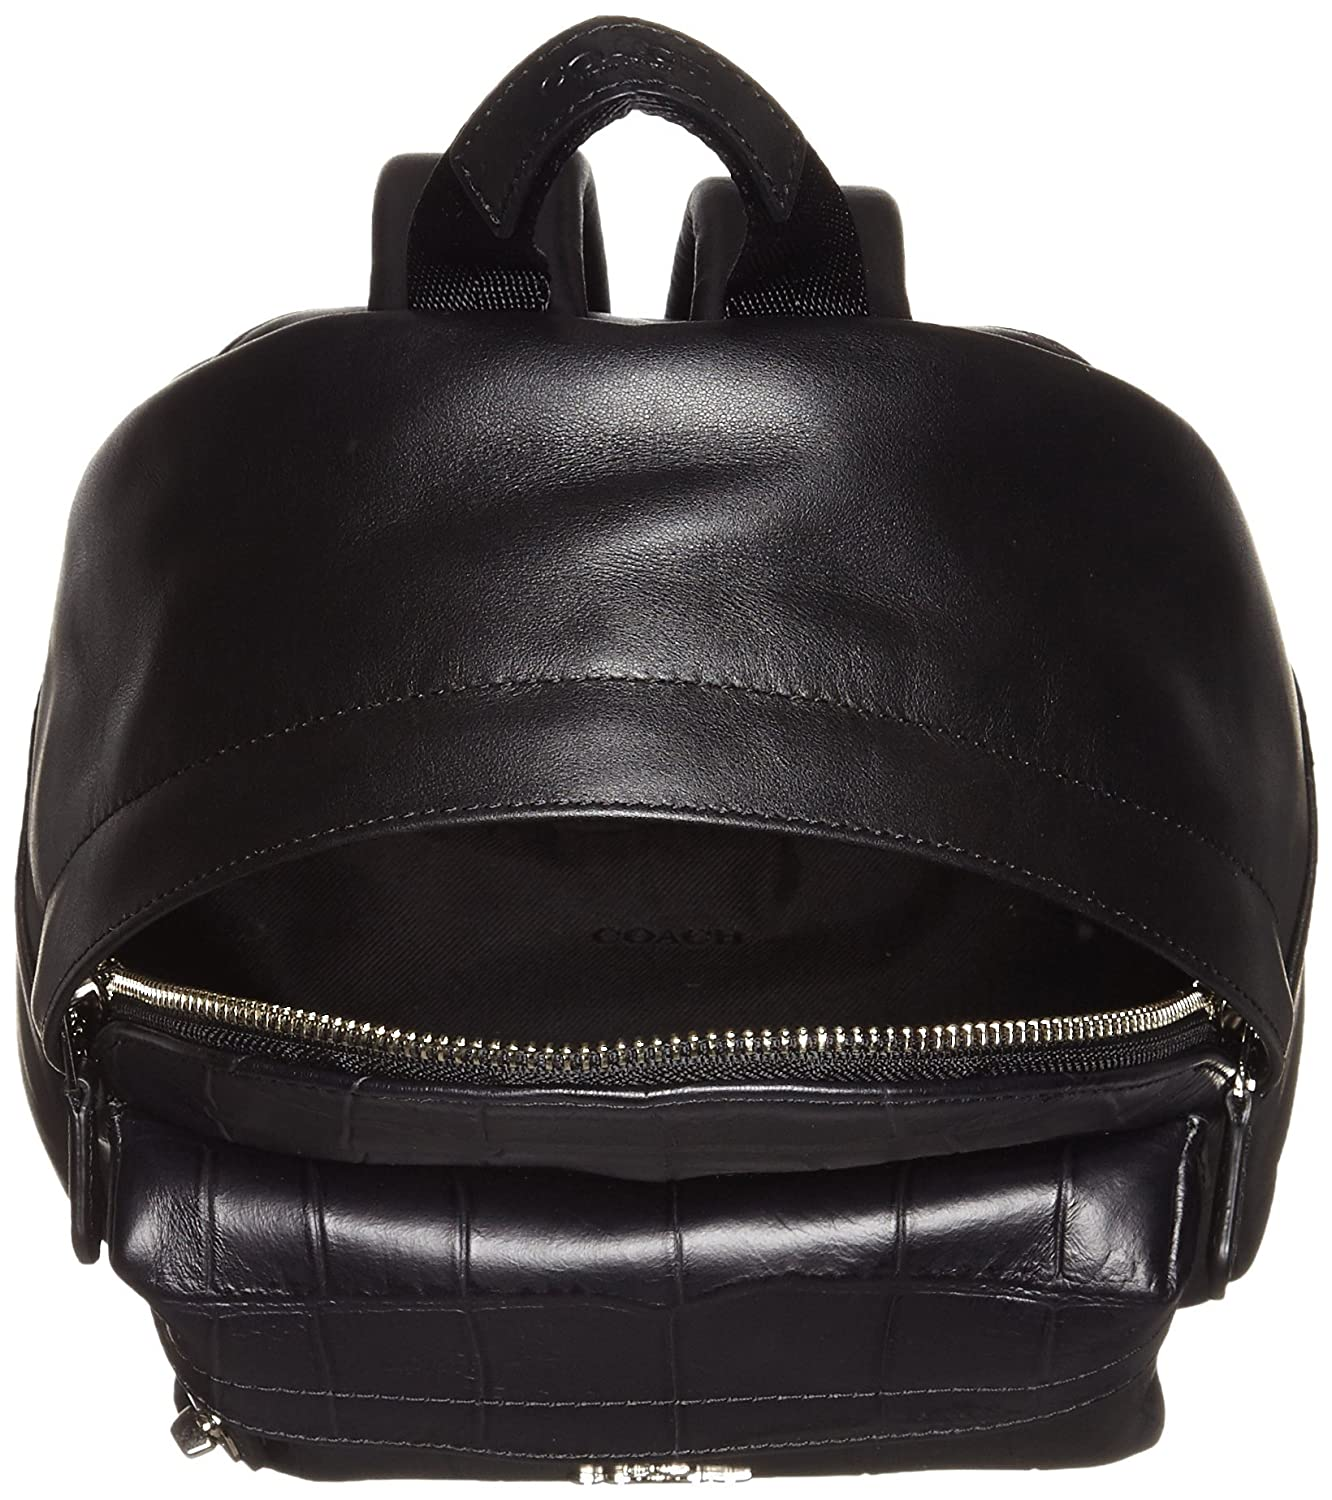 db9d224474 Amazon.com  Coach Mini Campus Backpack In Croc Embossed Leather 37713 Black  Backpack  Shoes